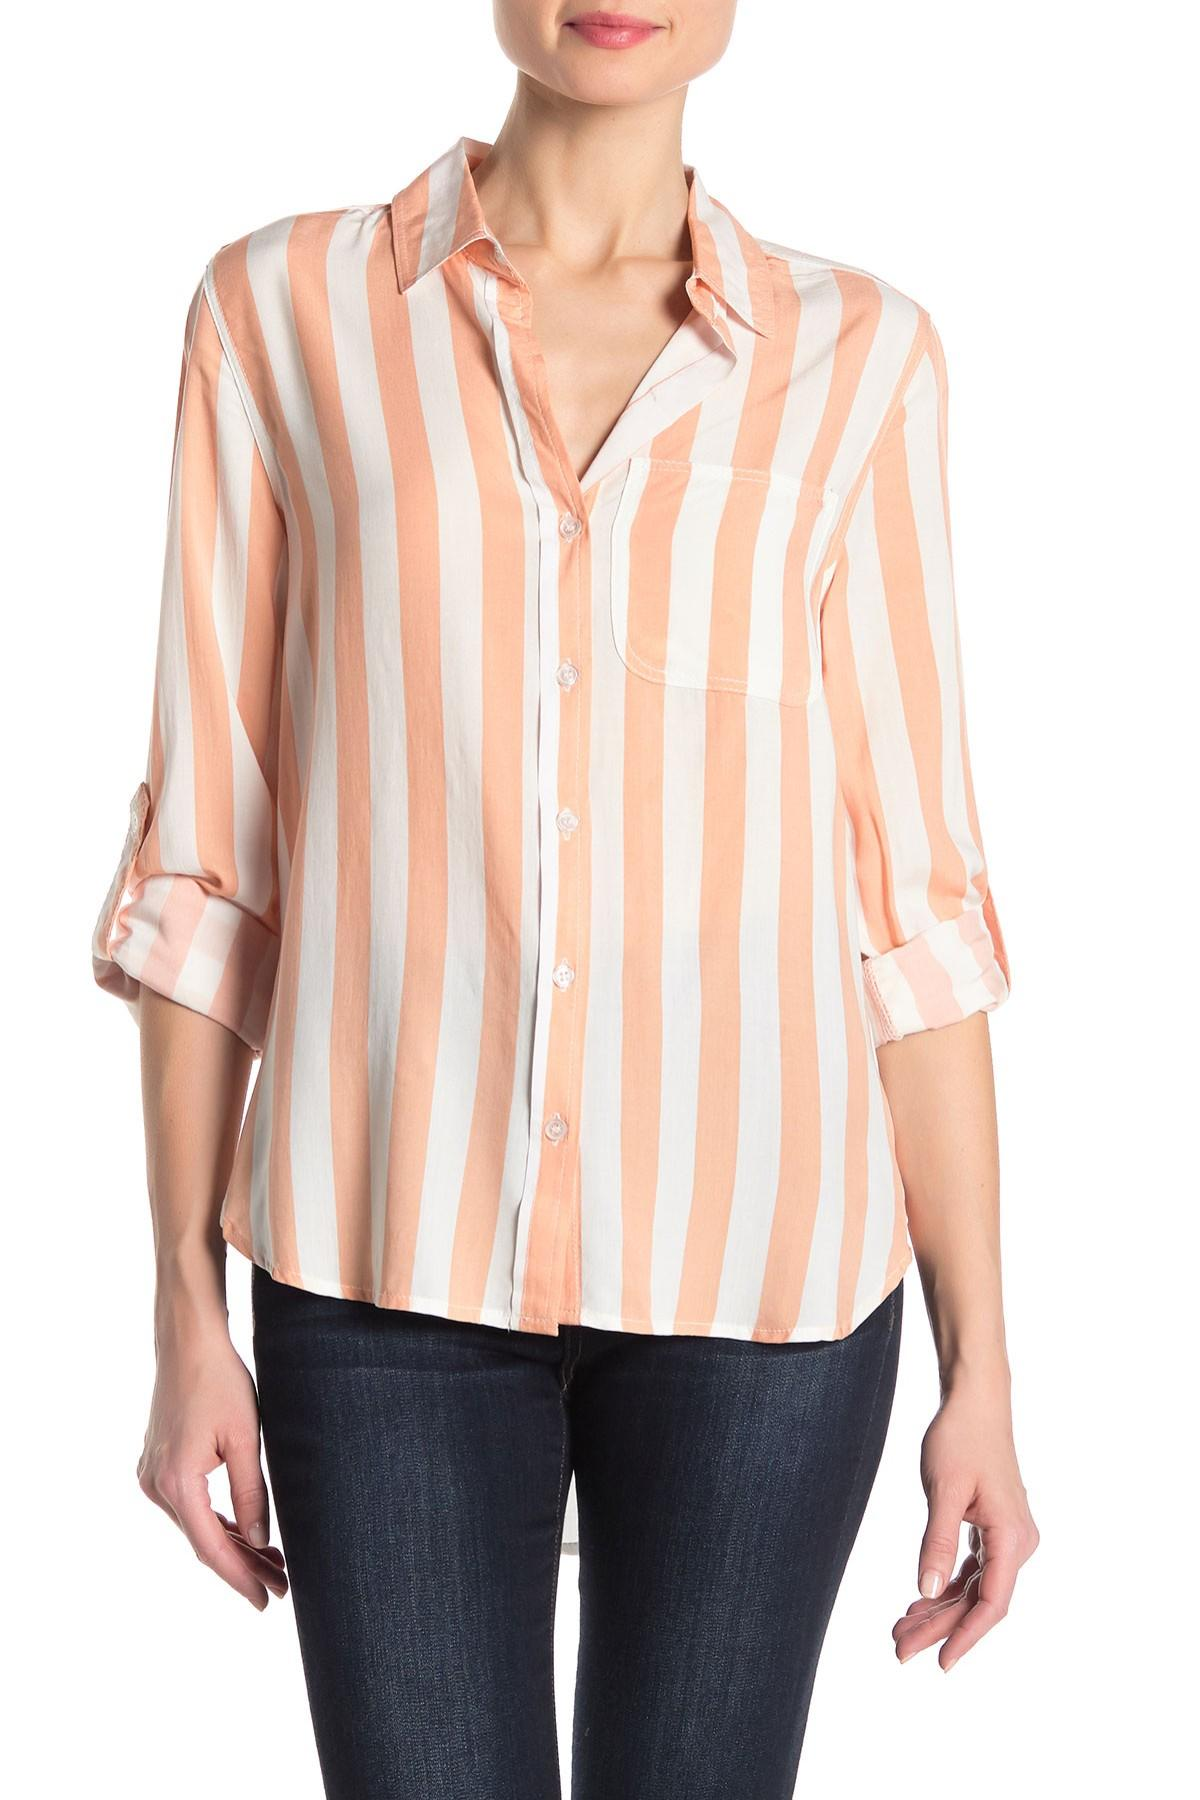 0123c8a6c1 Lyst - Velvet Heart Striped Button Down Shirt in Pink